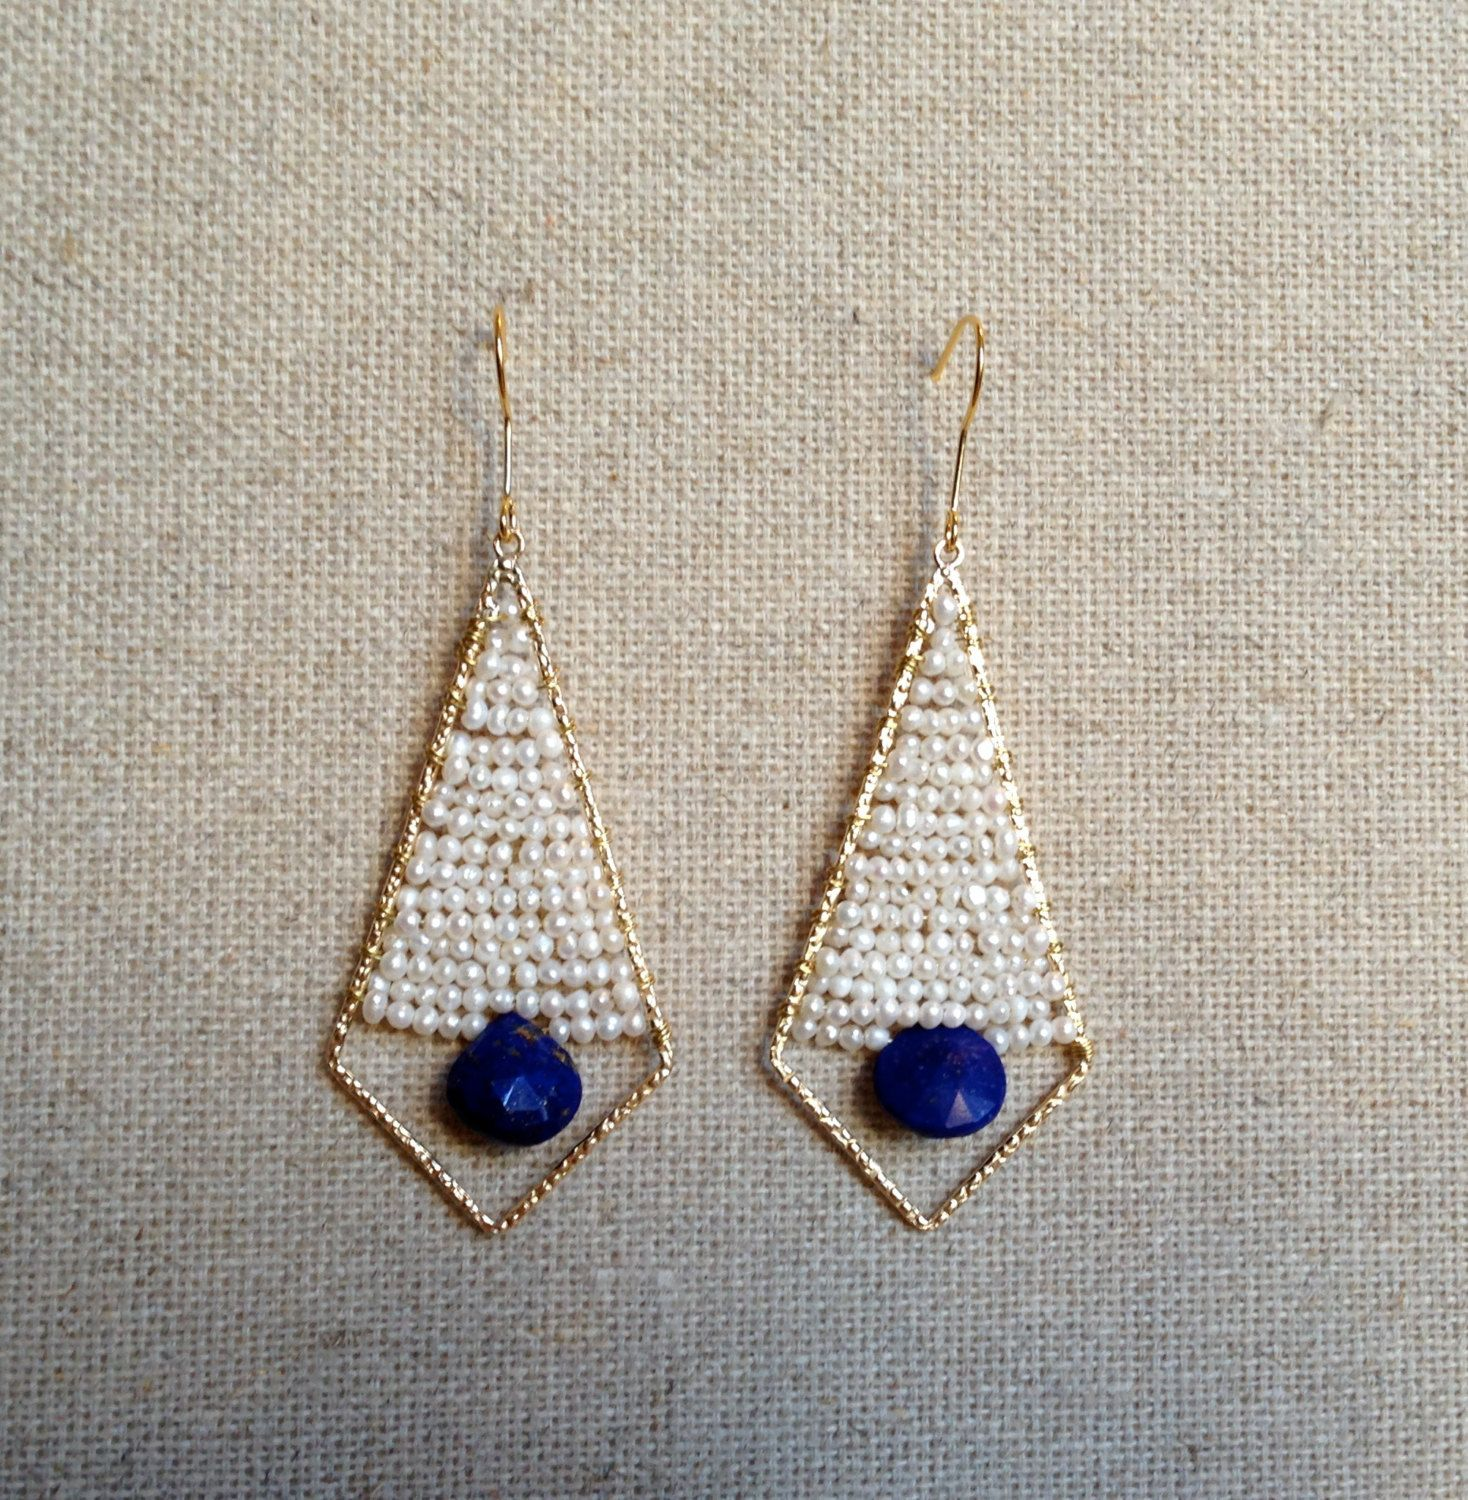 The Houston- Gold Plated Wire Wrapped Beaded Earring, Pearl and Lapis, www.etsy.com/shop/txgoldengirl